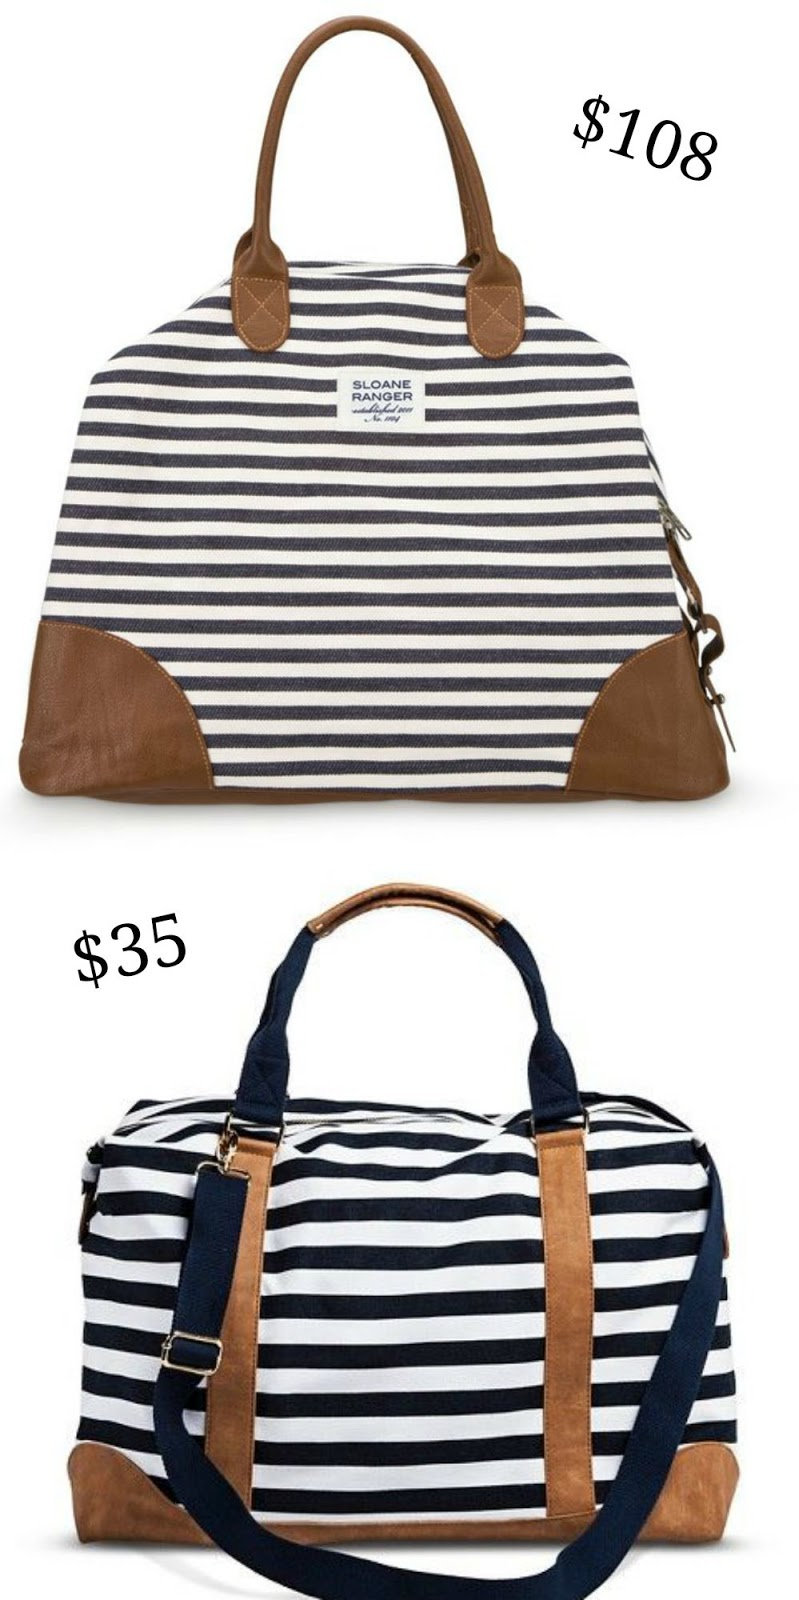 3afe4639a1ec87 KEEP CALM AND CARRY ON: Striped Weekender: Save or Splurge?